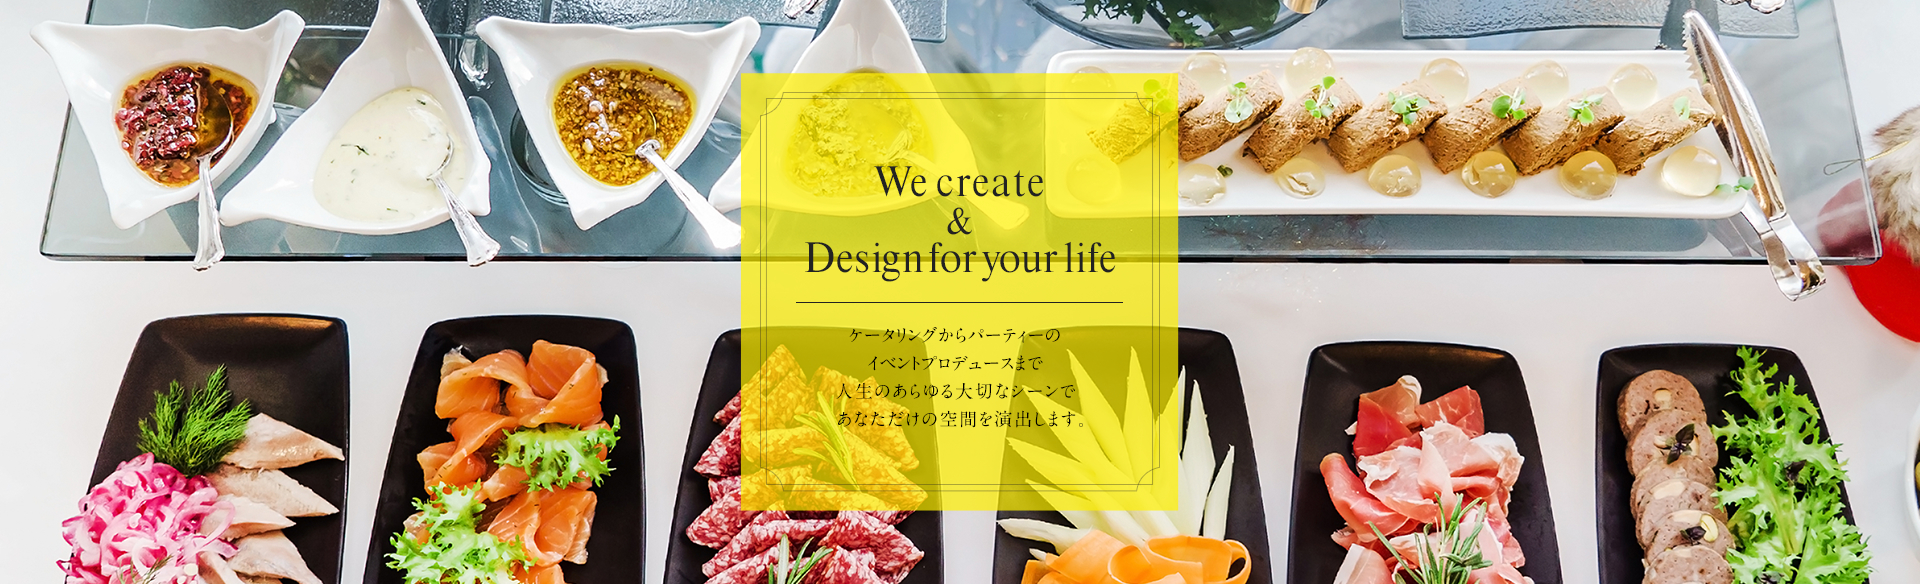 We create & design for your life.